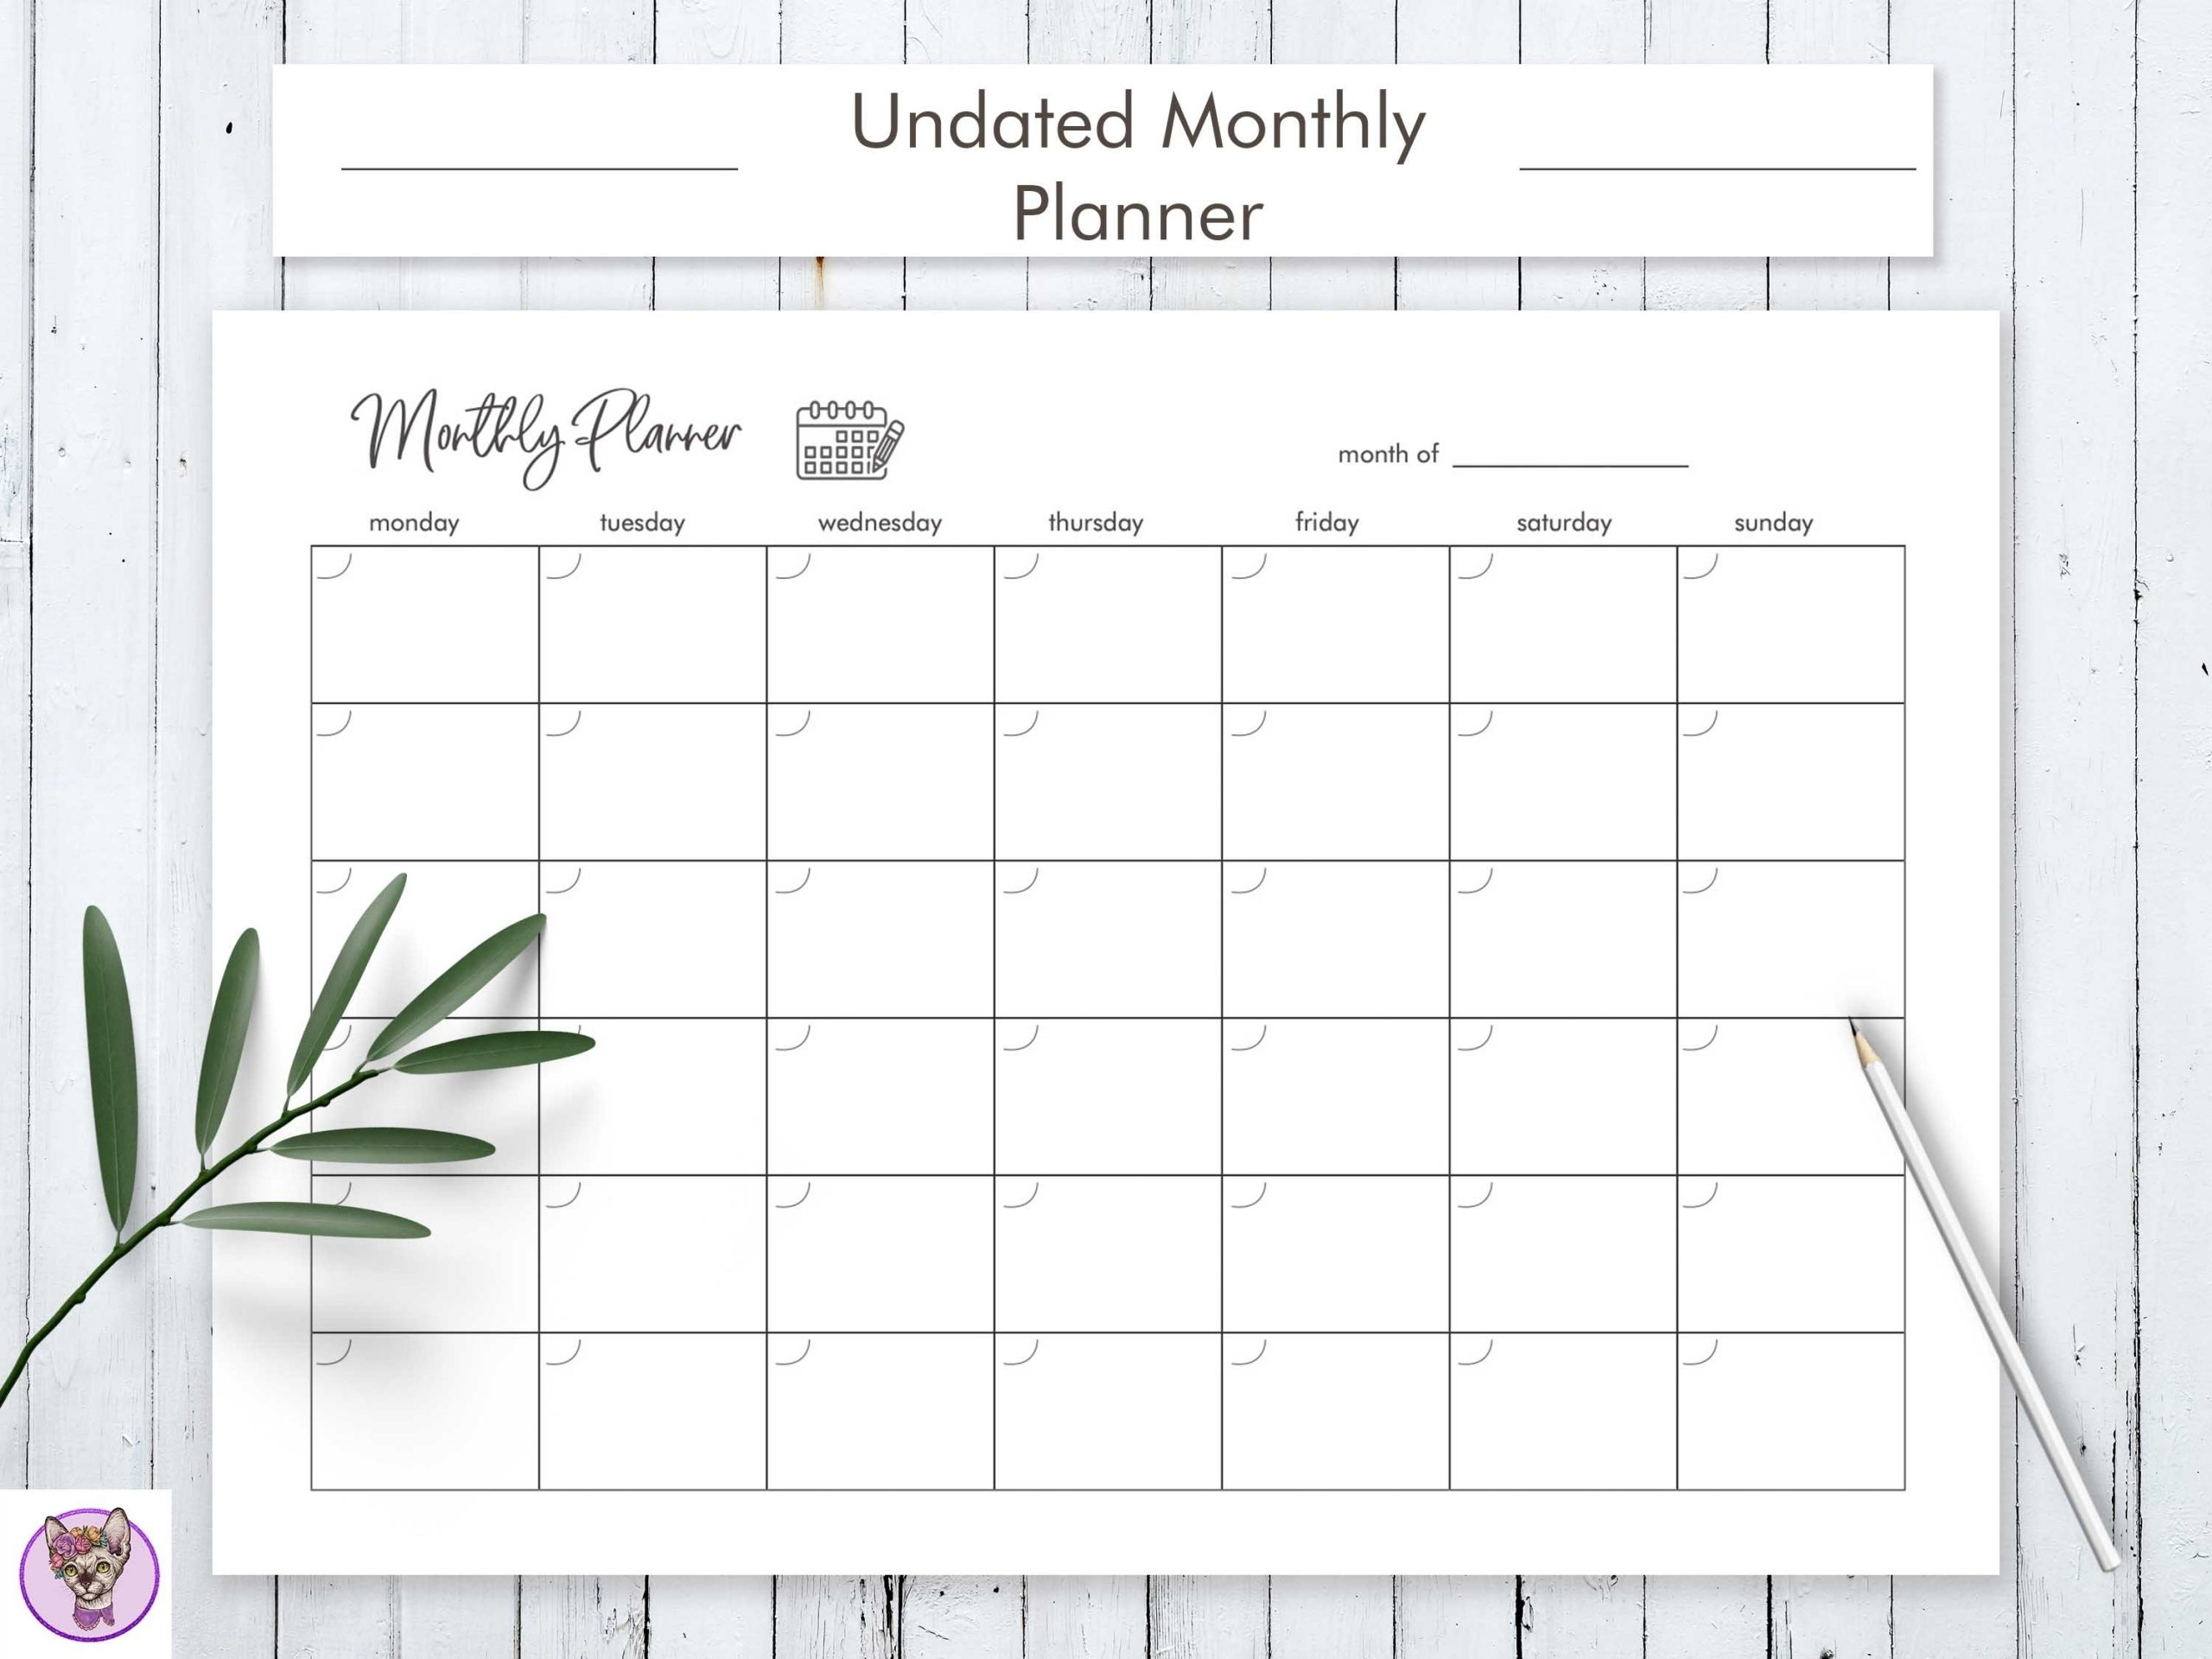 Undated Monthly Planner Printable